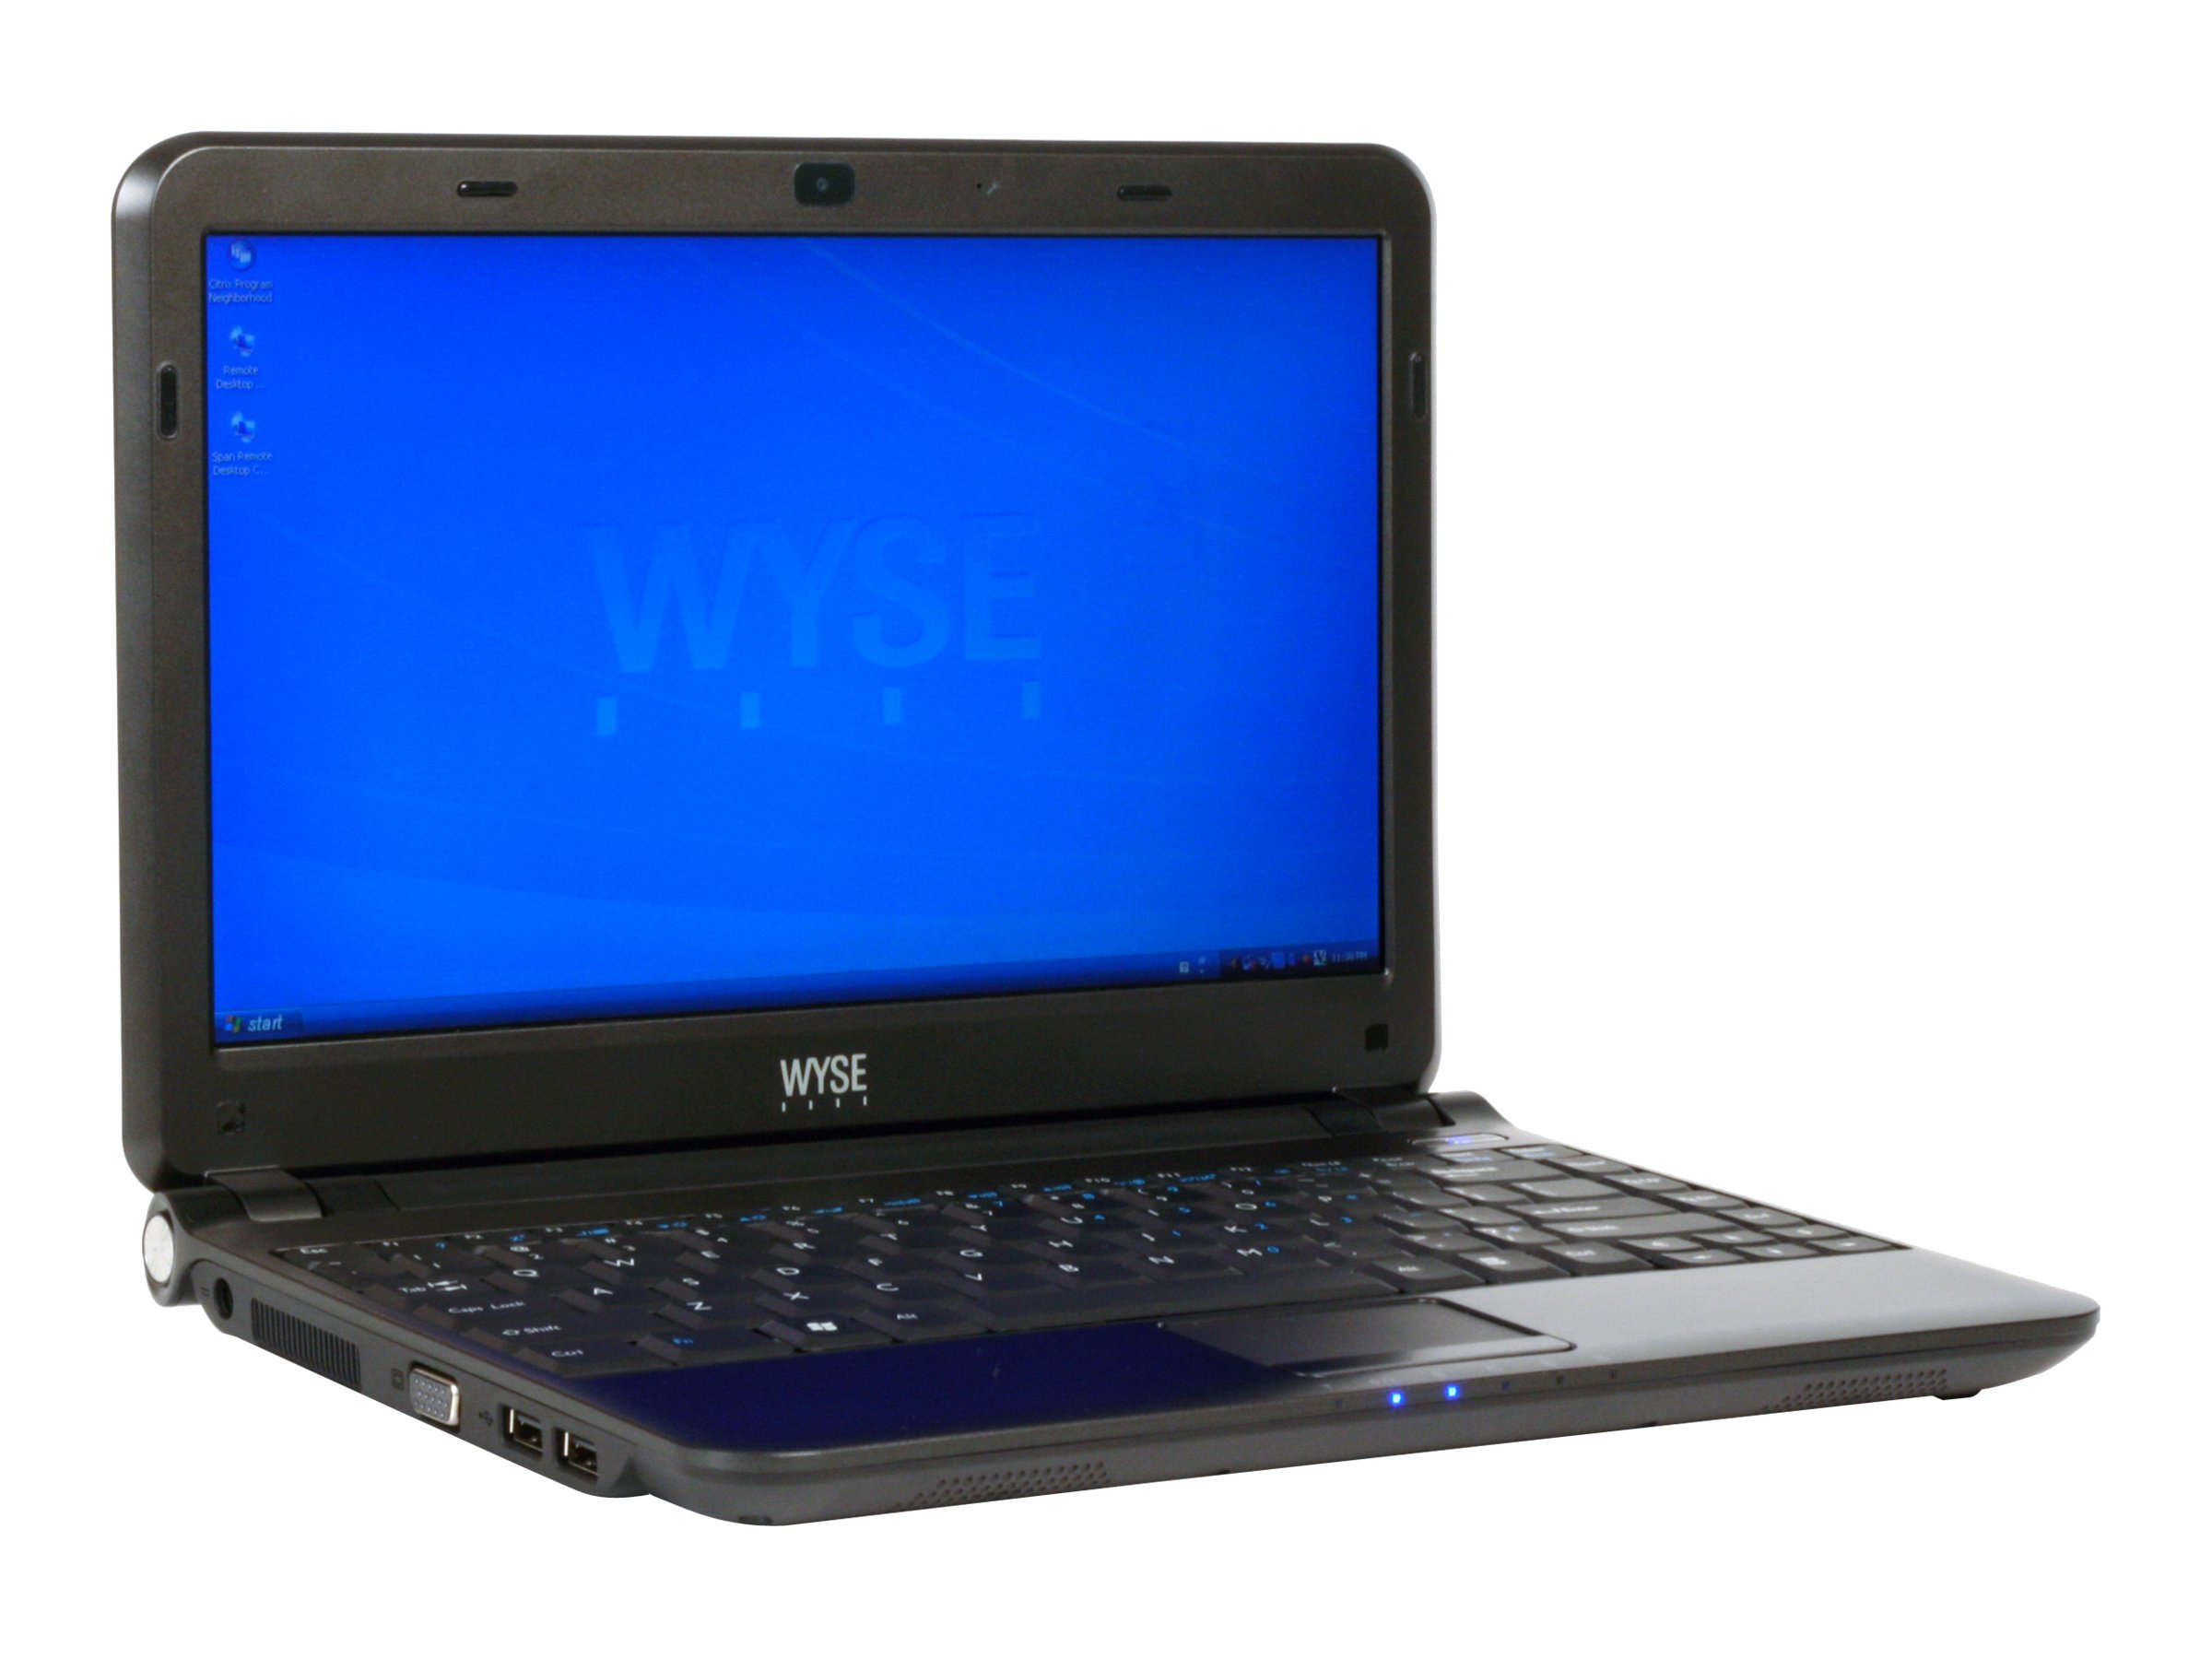 Wyse X90CW Mobile Thin Client 2GB Flash 1GB RAM 6C US 11.6, 909551-01L, 10778650, Thin Client Hardware